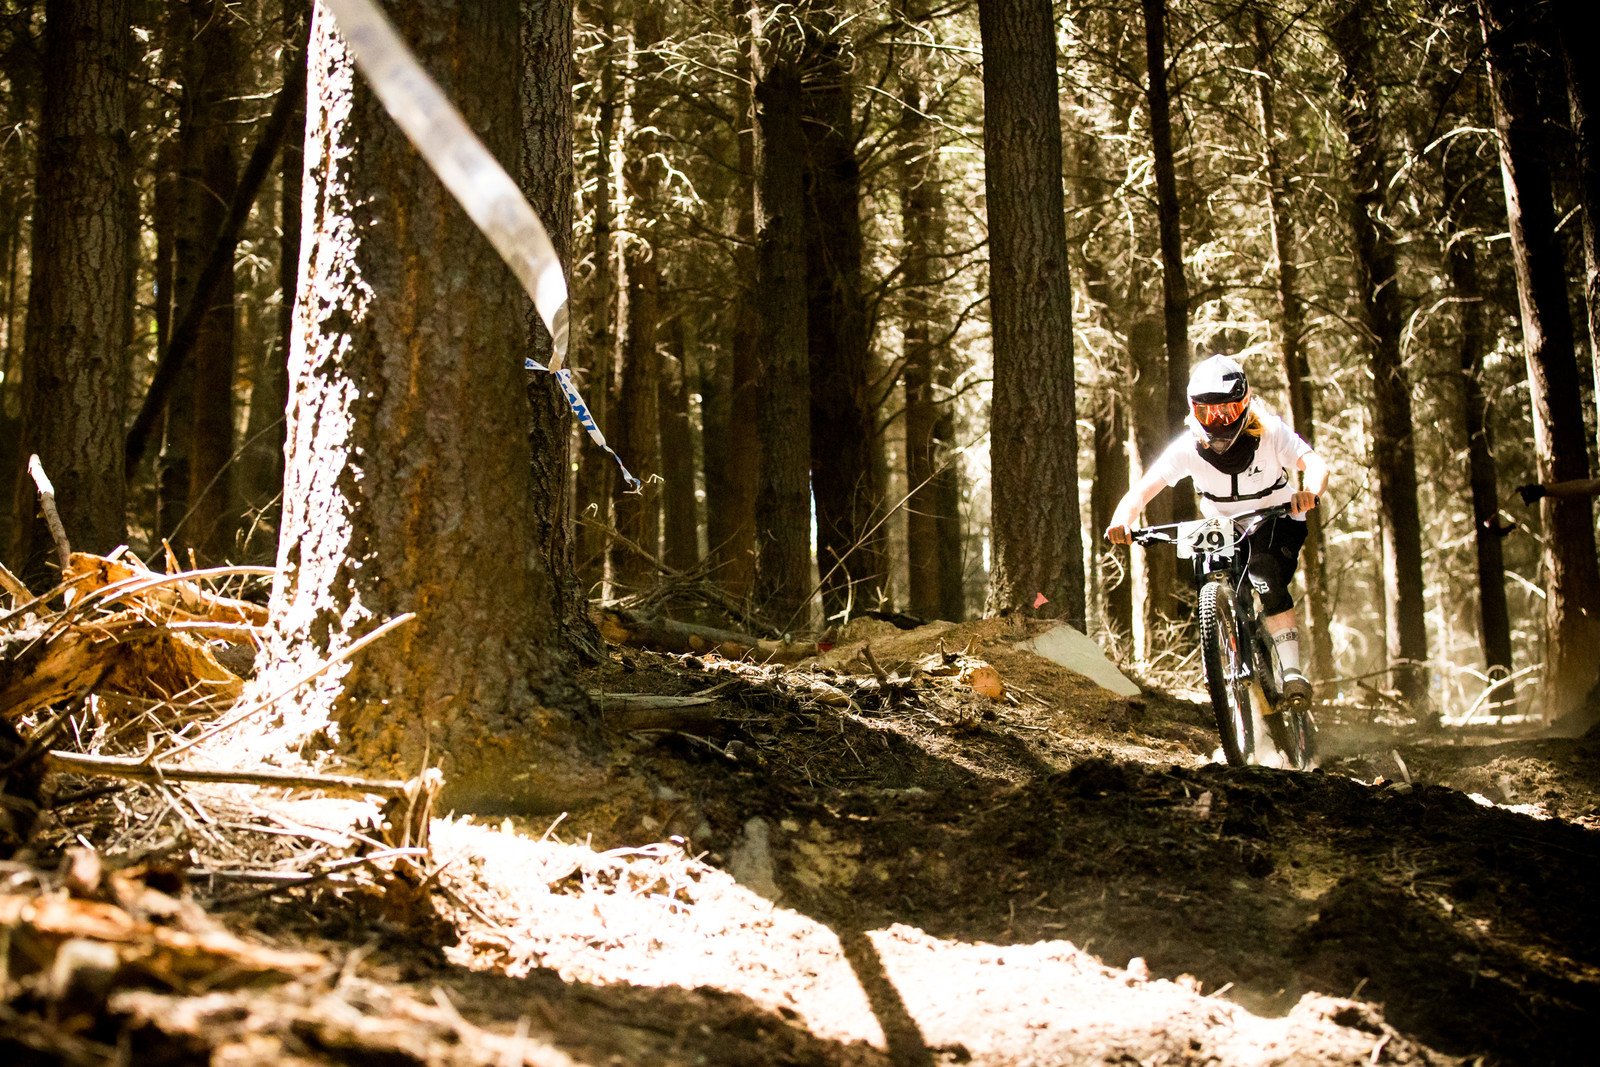 Queenstown Woods - Homegrown NZ Downhill - Vertigo Bikes Ride More DH Series Race 1 - Mountain Biking Pictures - Vital MTB